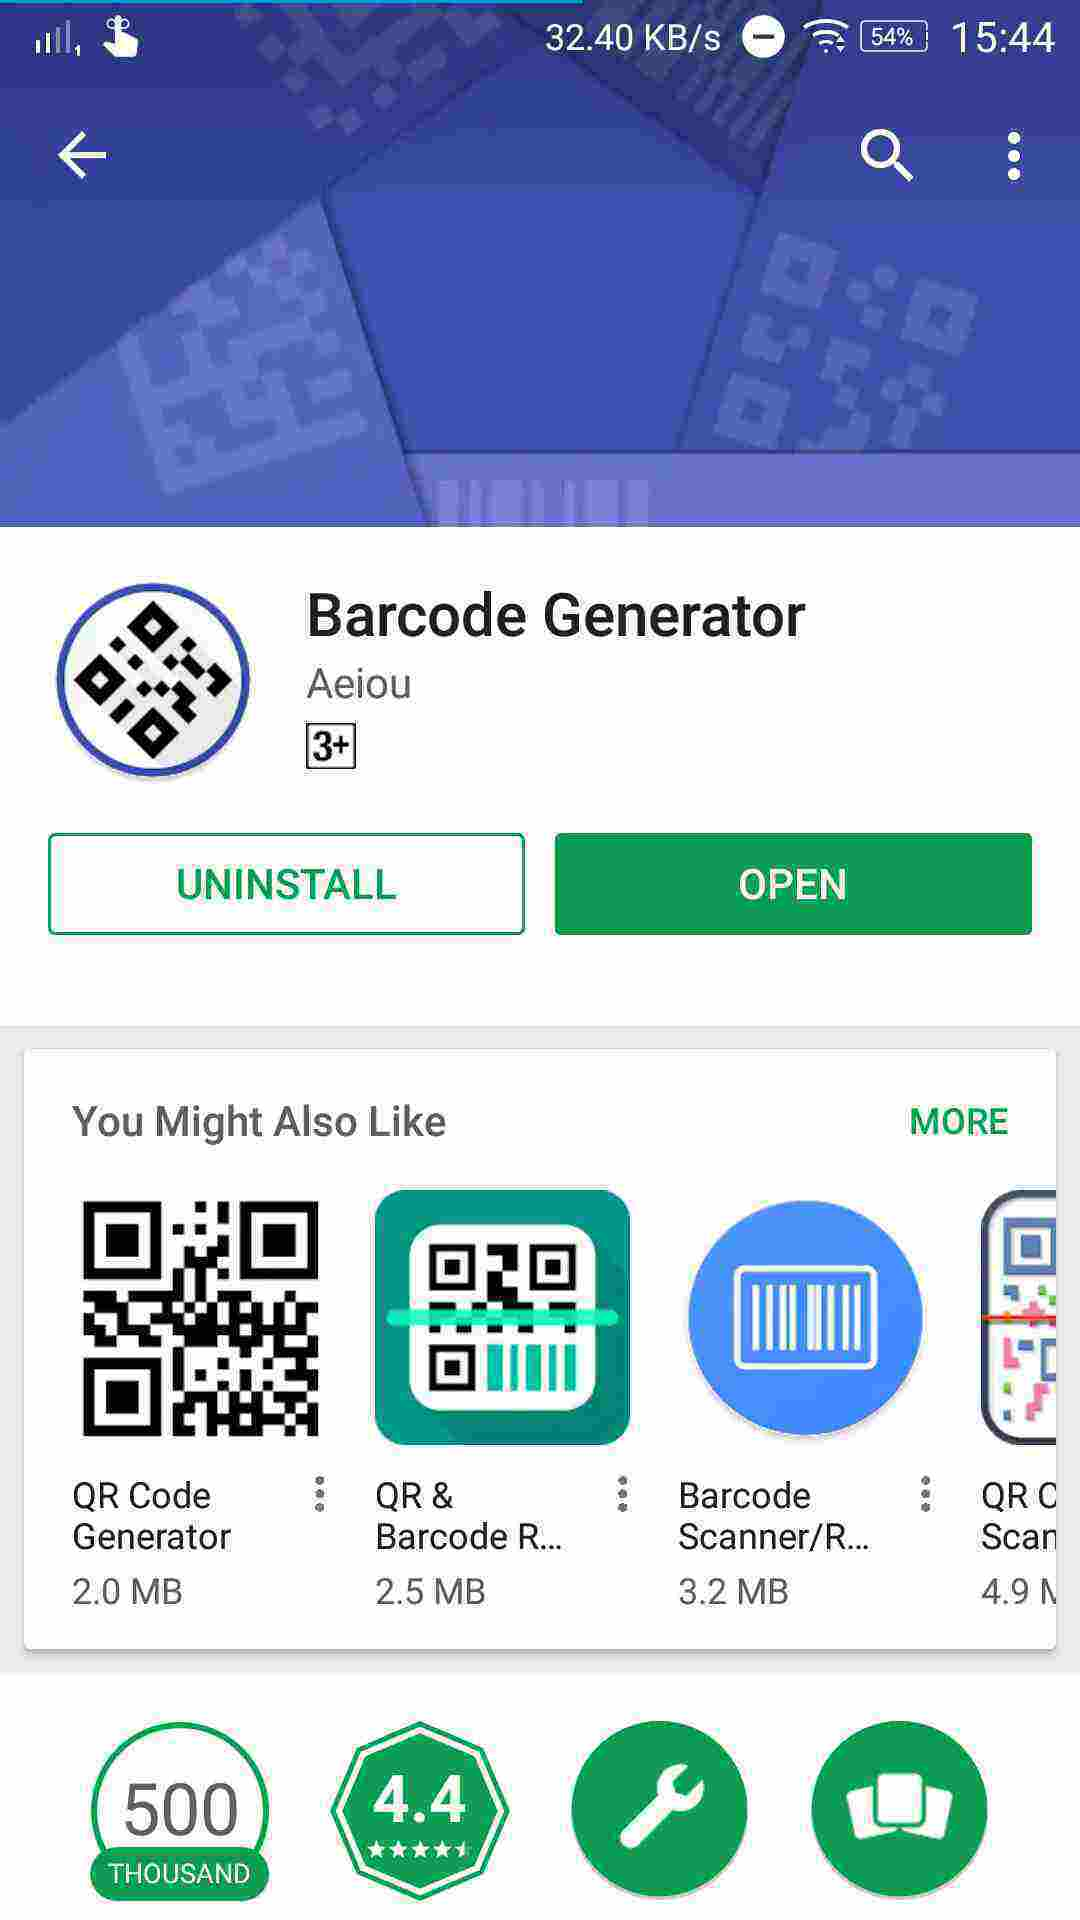 Generating QR Codes on Android